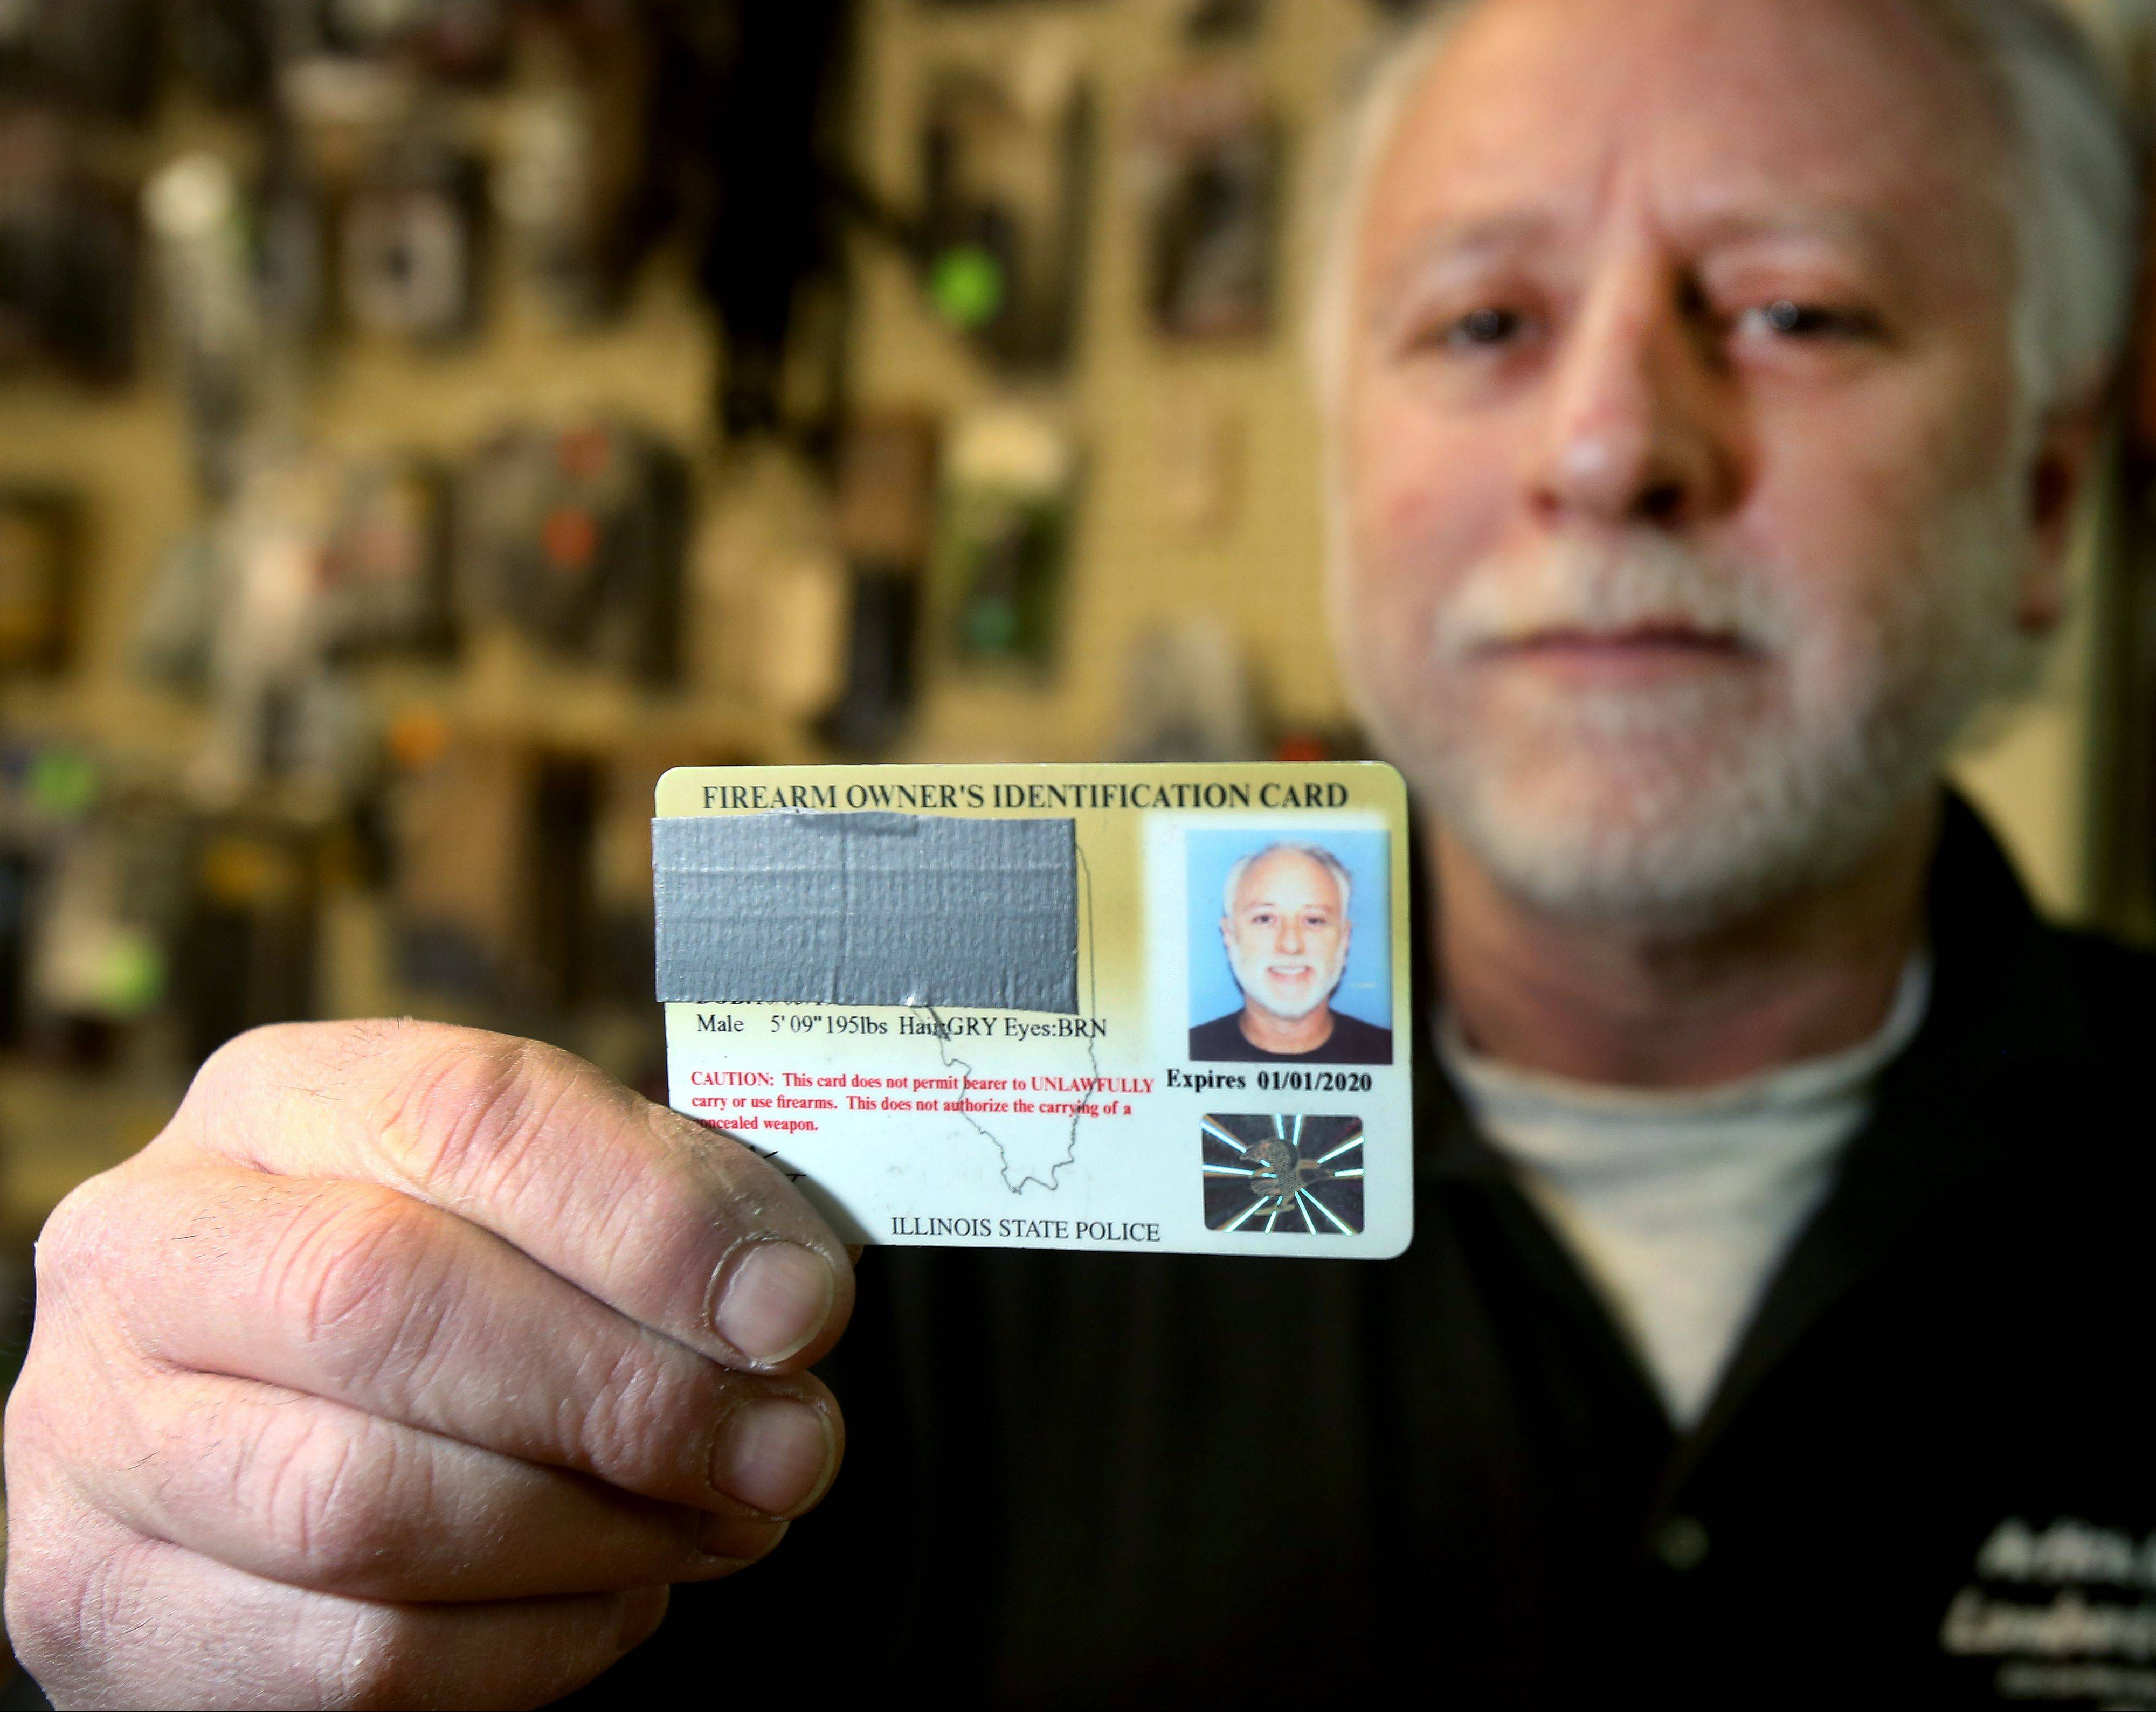 Barry Soskin, owner of Article 2 Gun Range in Lombard, is a Firearm Owner Identification cardholder, but he believes the state law requiring licensing before purchase puts his business at a disadvantage.